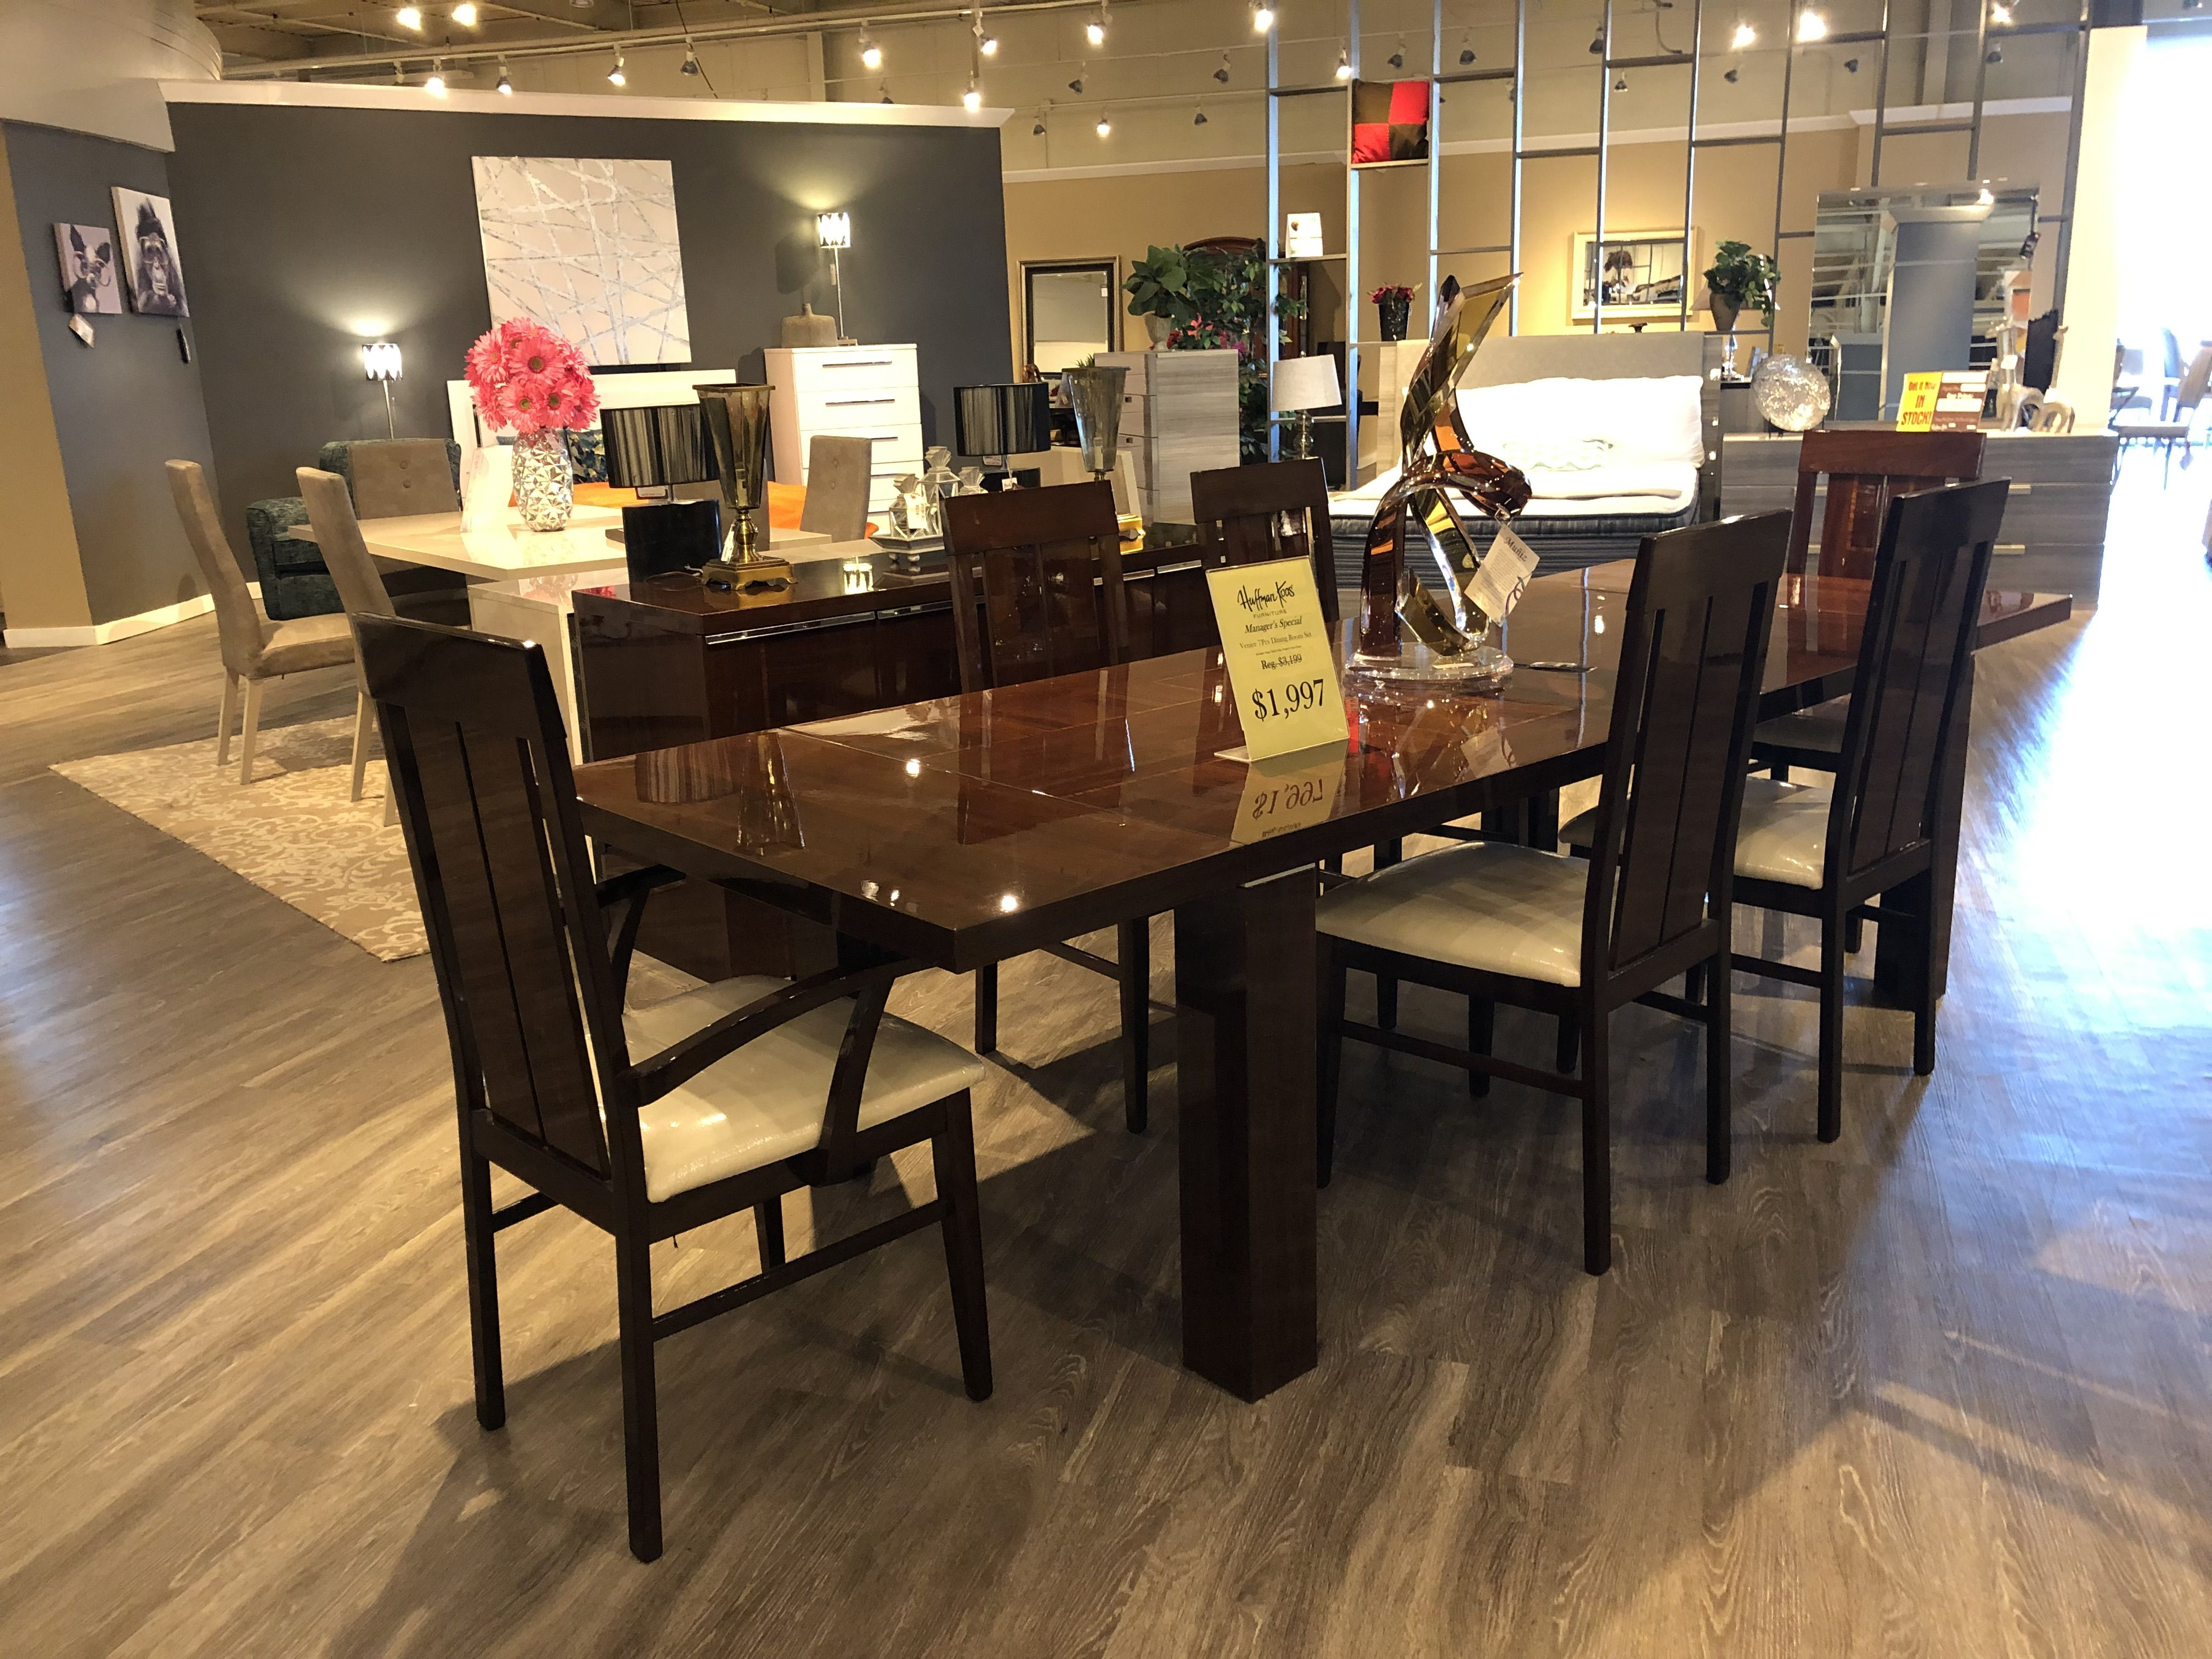 Huffman Koos Has Been In The Furniture Business Since 1960 Our Goal Has Always Been To Pr Furniture Affordable Living Room Furniture Discount Furniture Stores